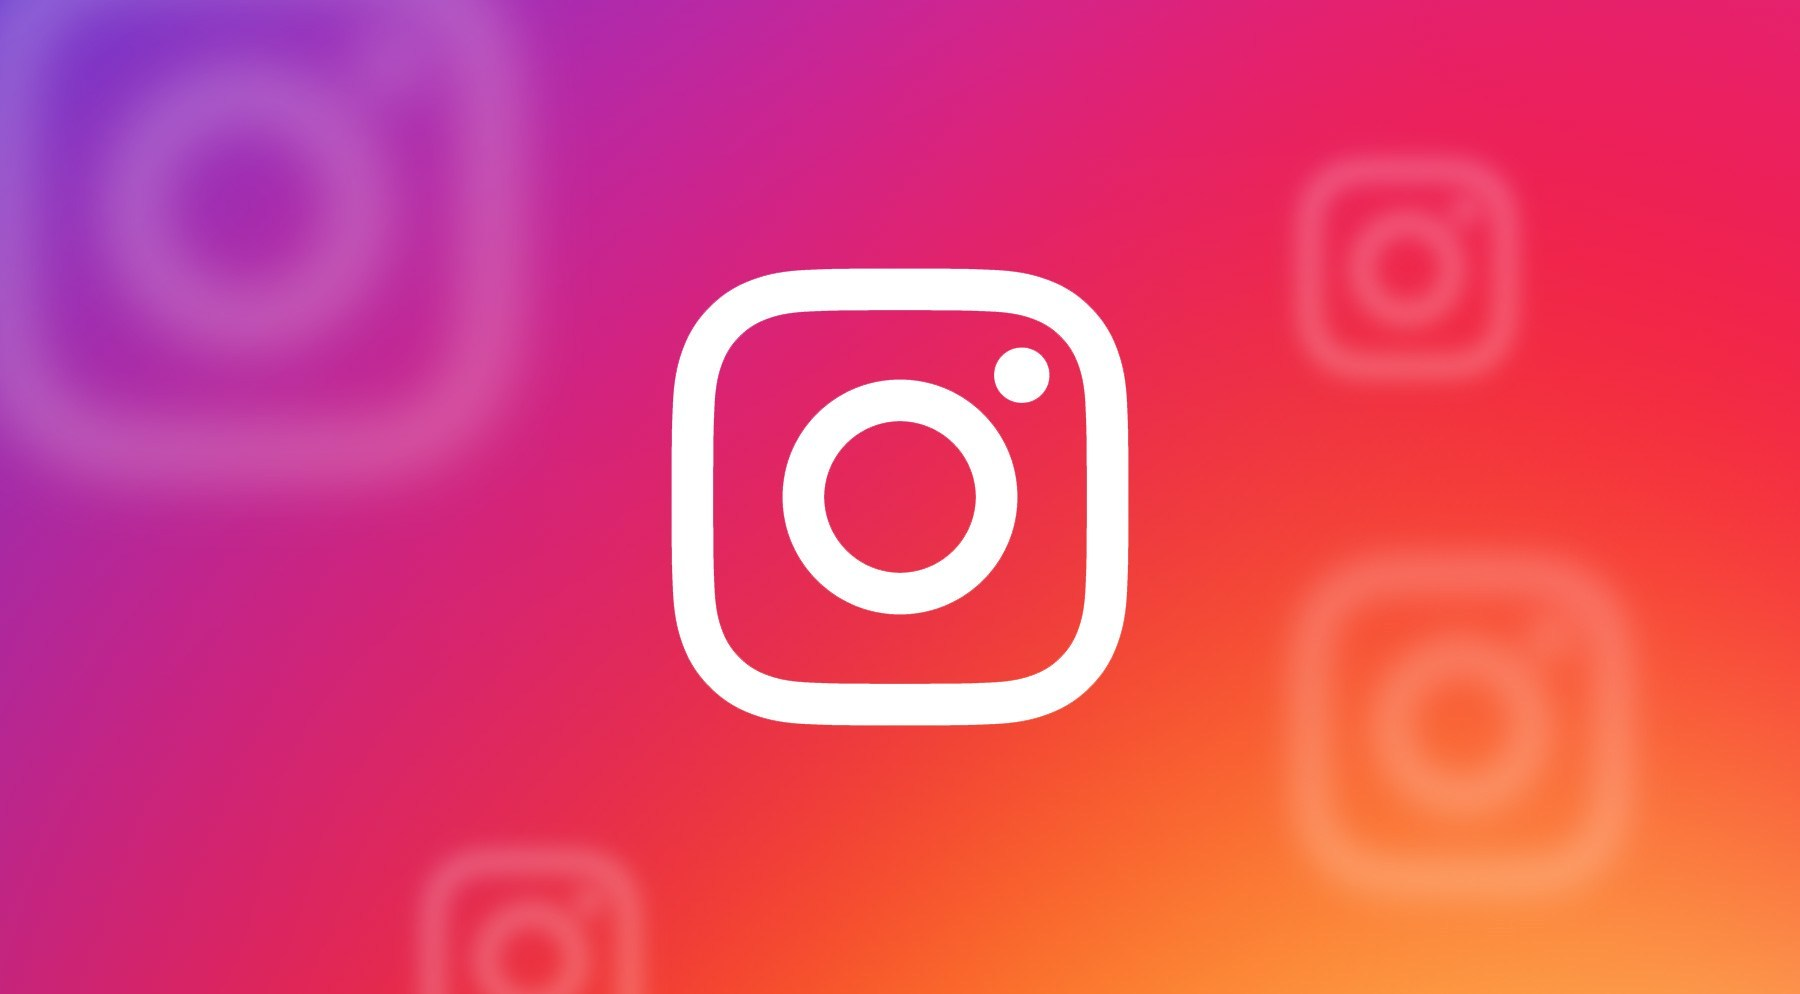 Instagram Marketing for Small Businesses in 2020